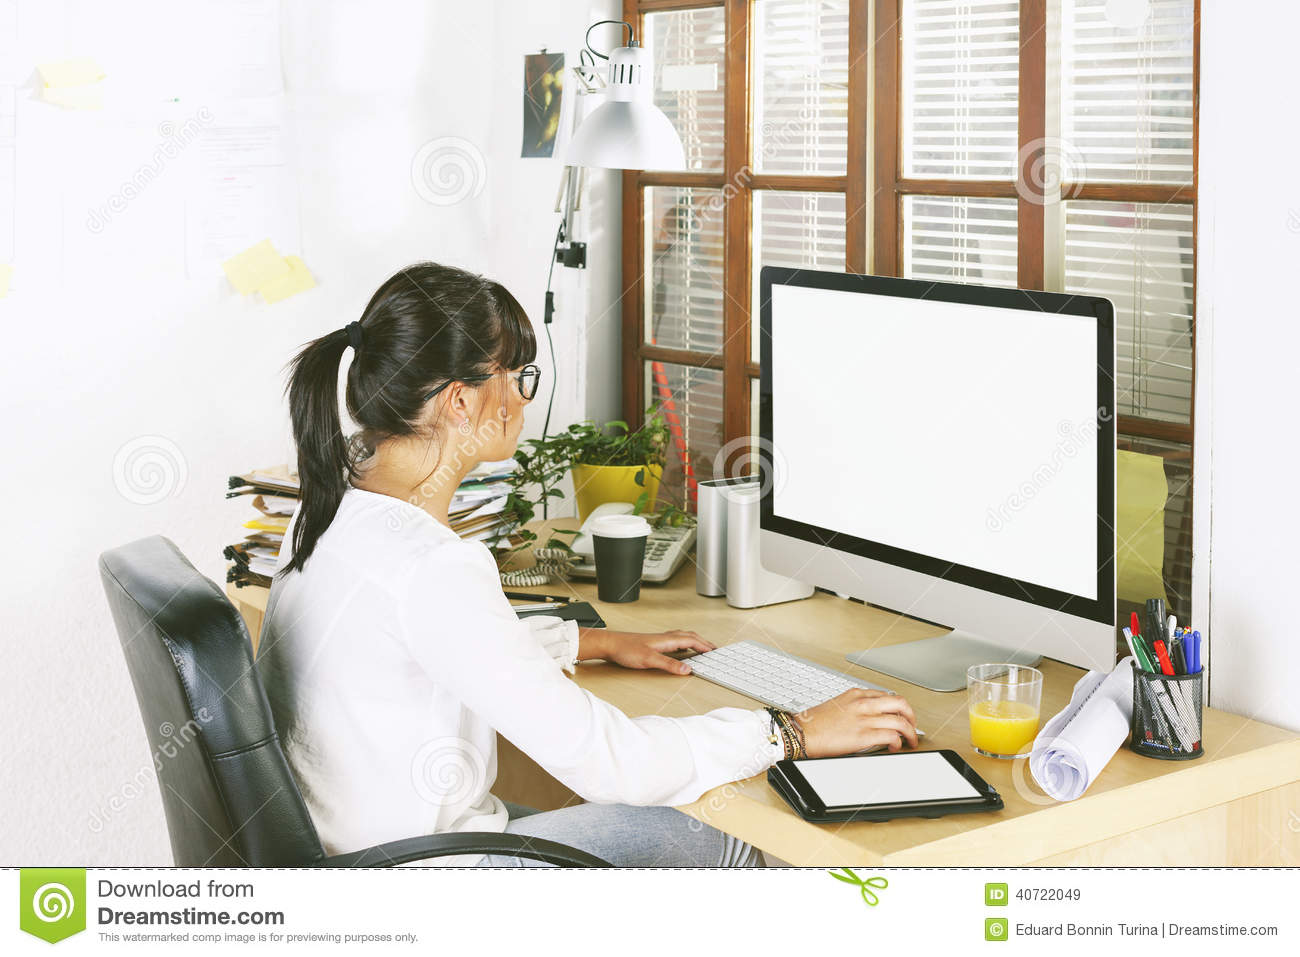 Wondrous Young Entrepreneur Woman Working On Home Office Stock Photo Largest Home Design Picture Inspirations Pitcheantrous